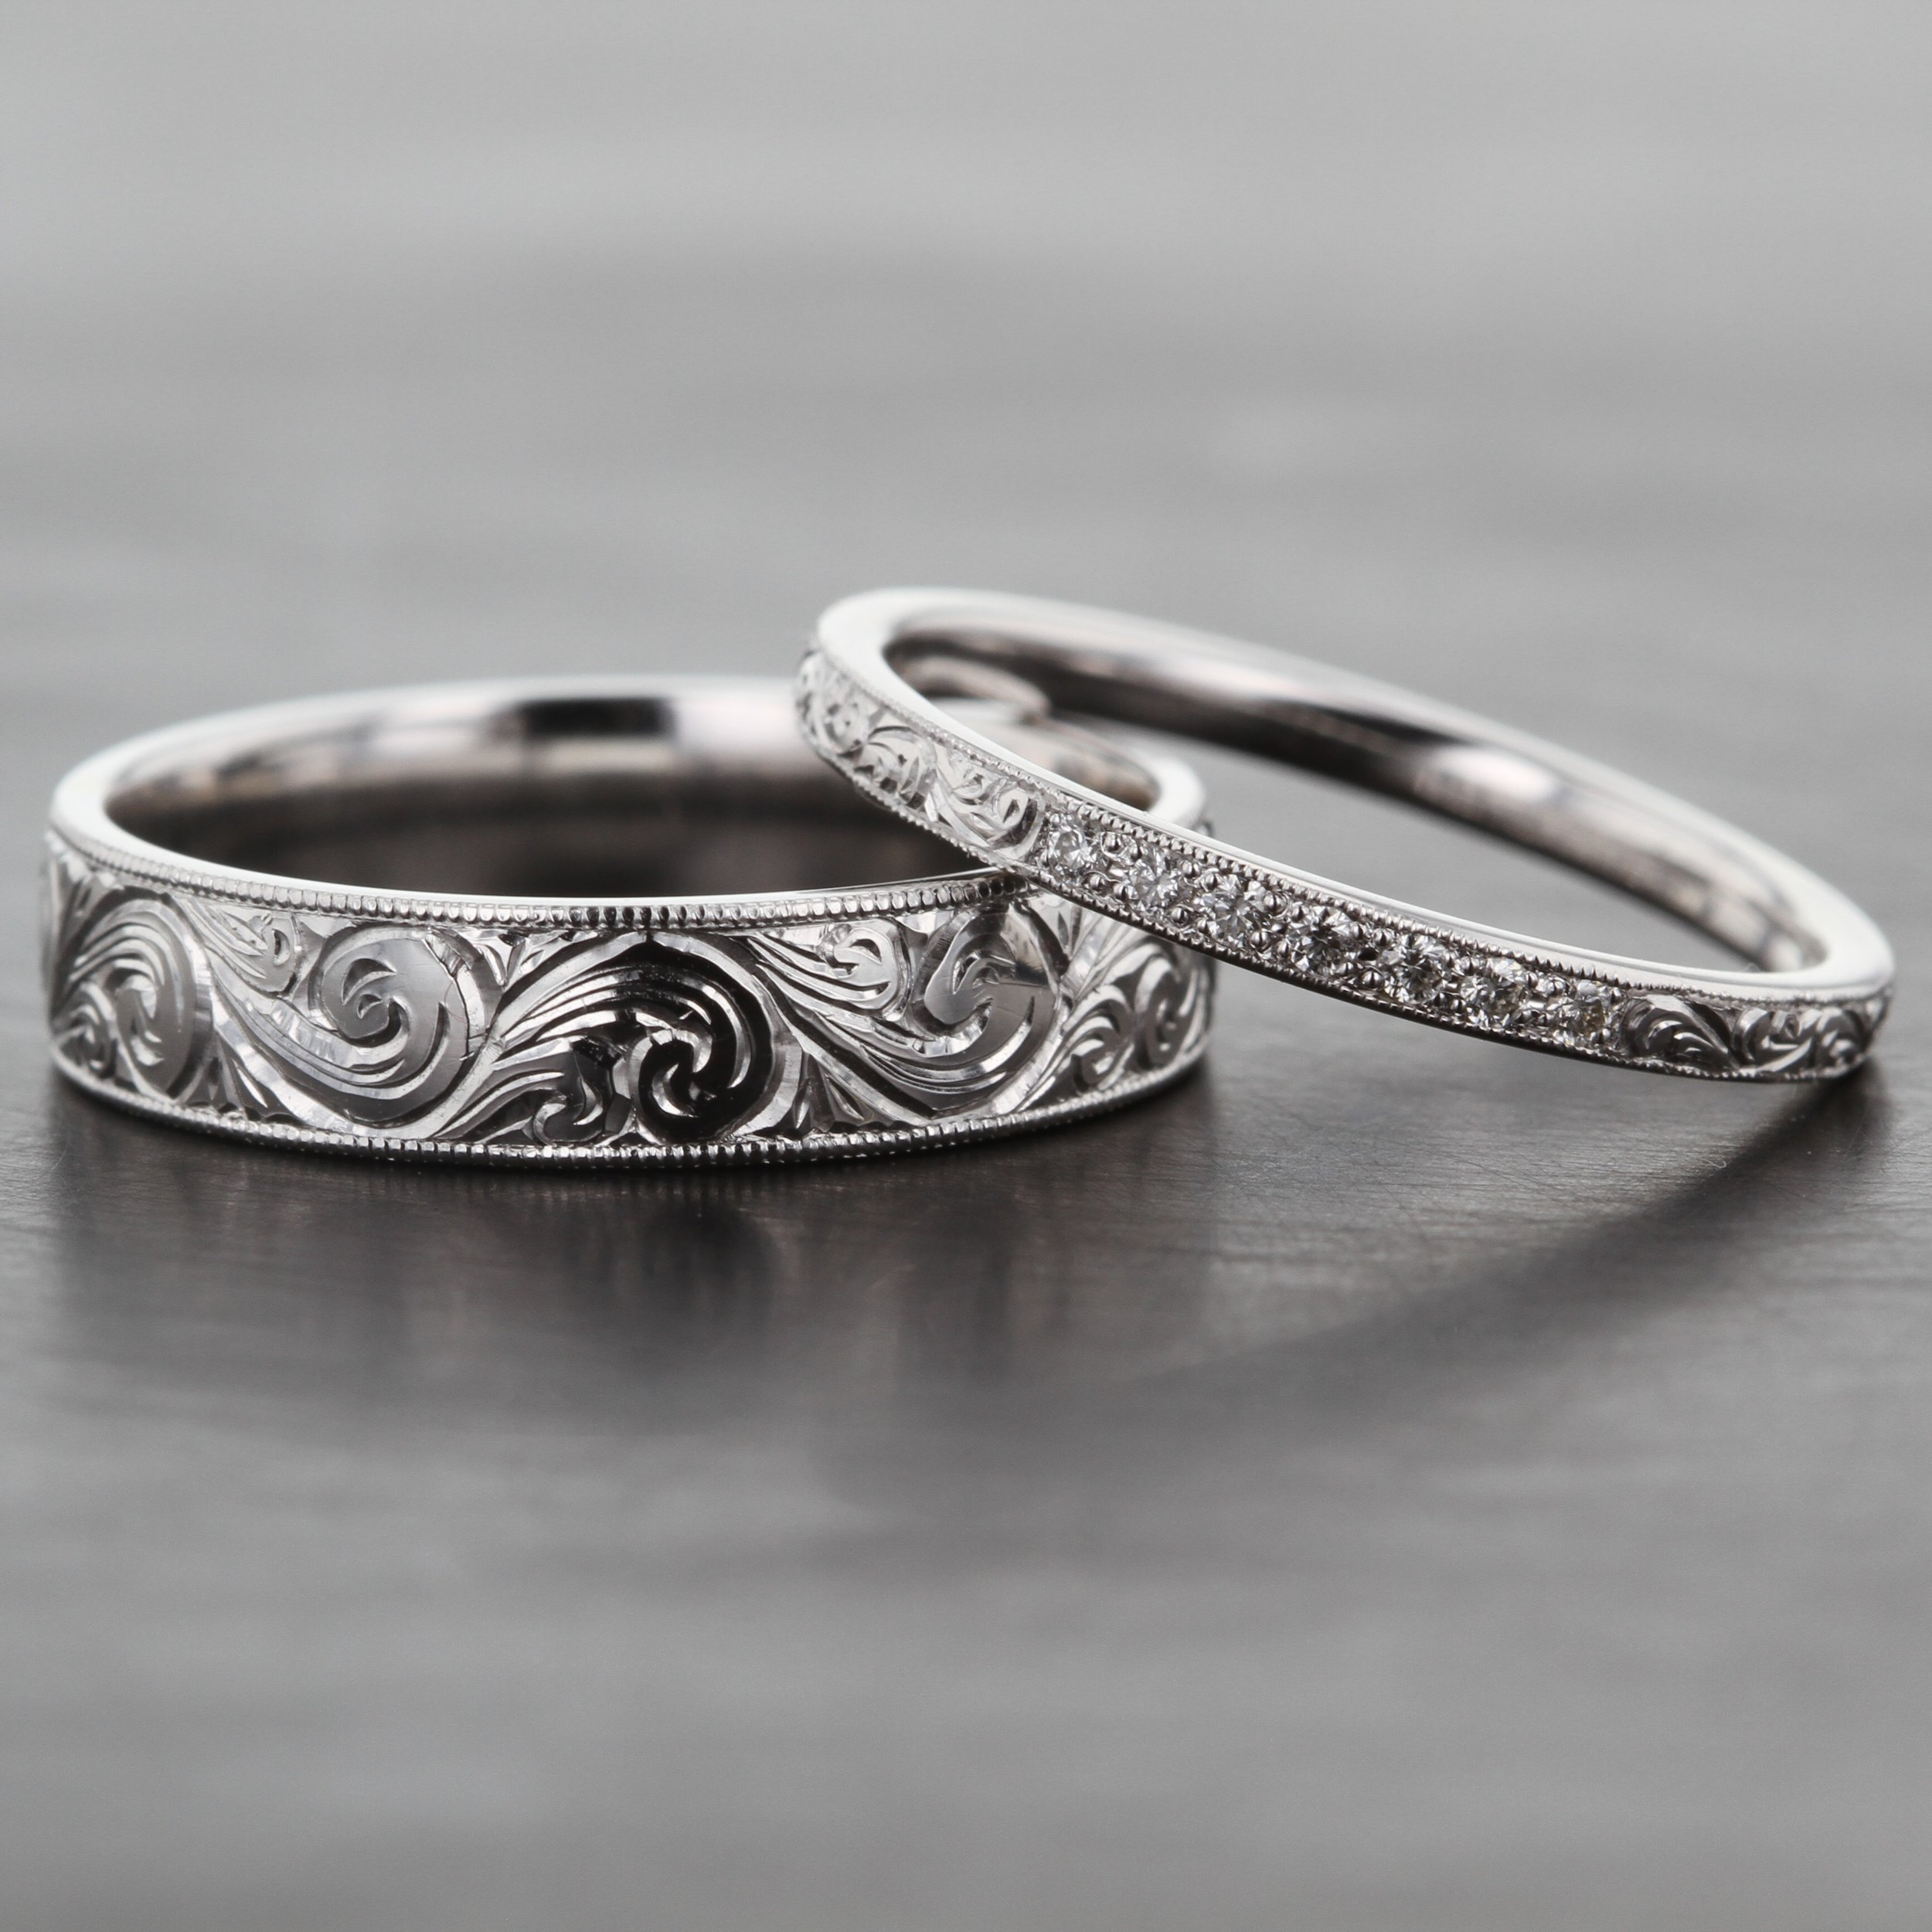 matching-custom-hand-engraved-wedding-band-ring-set.jpg